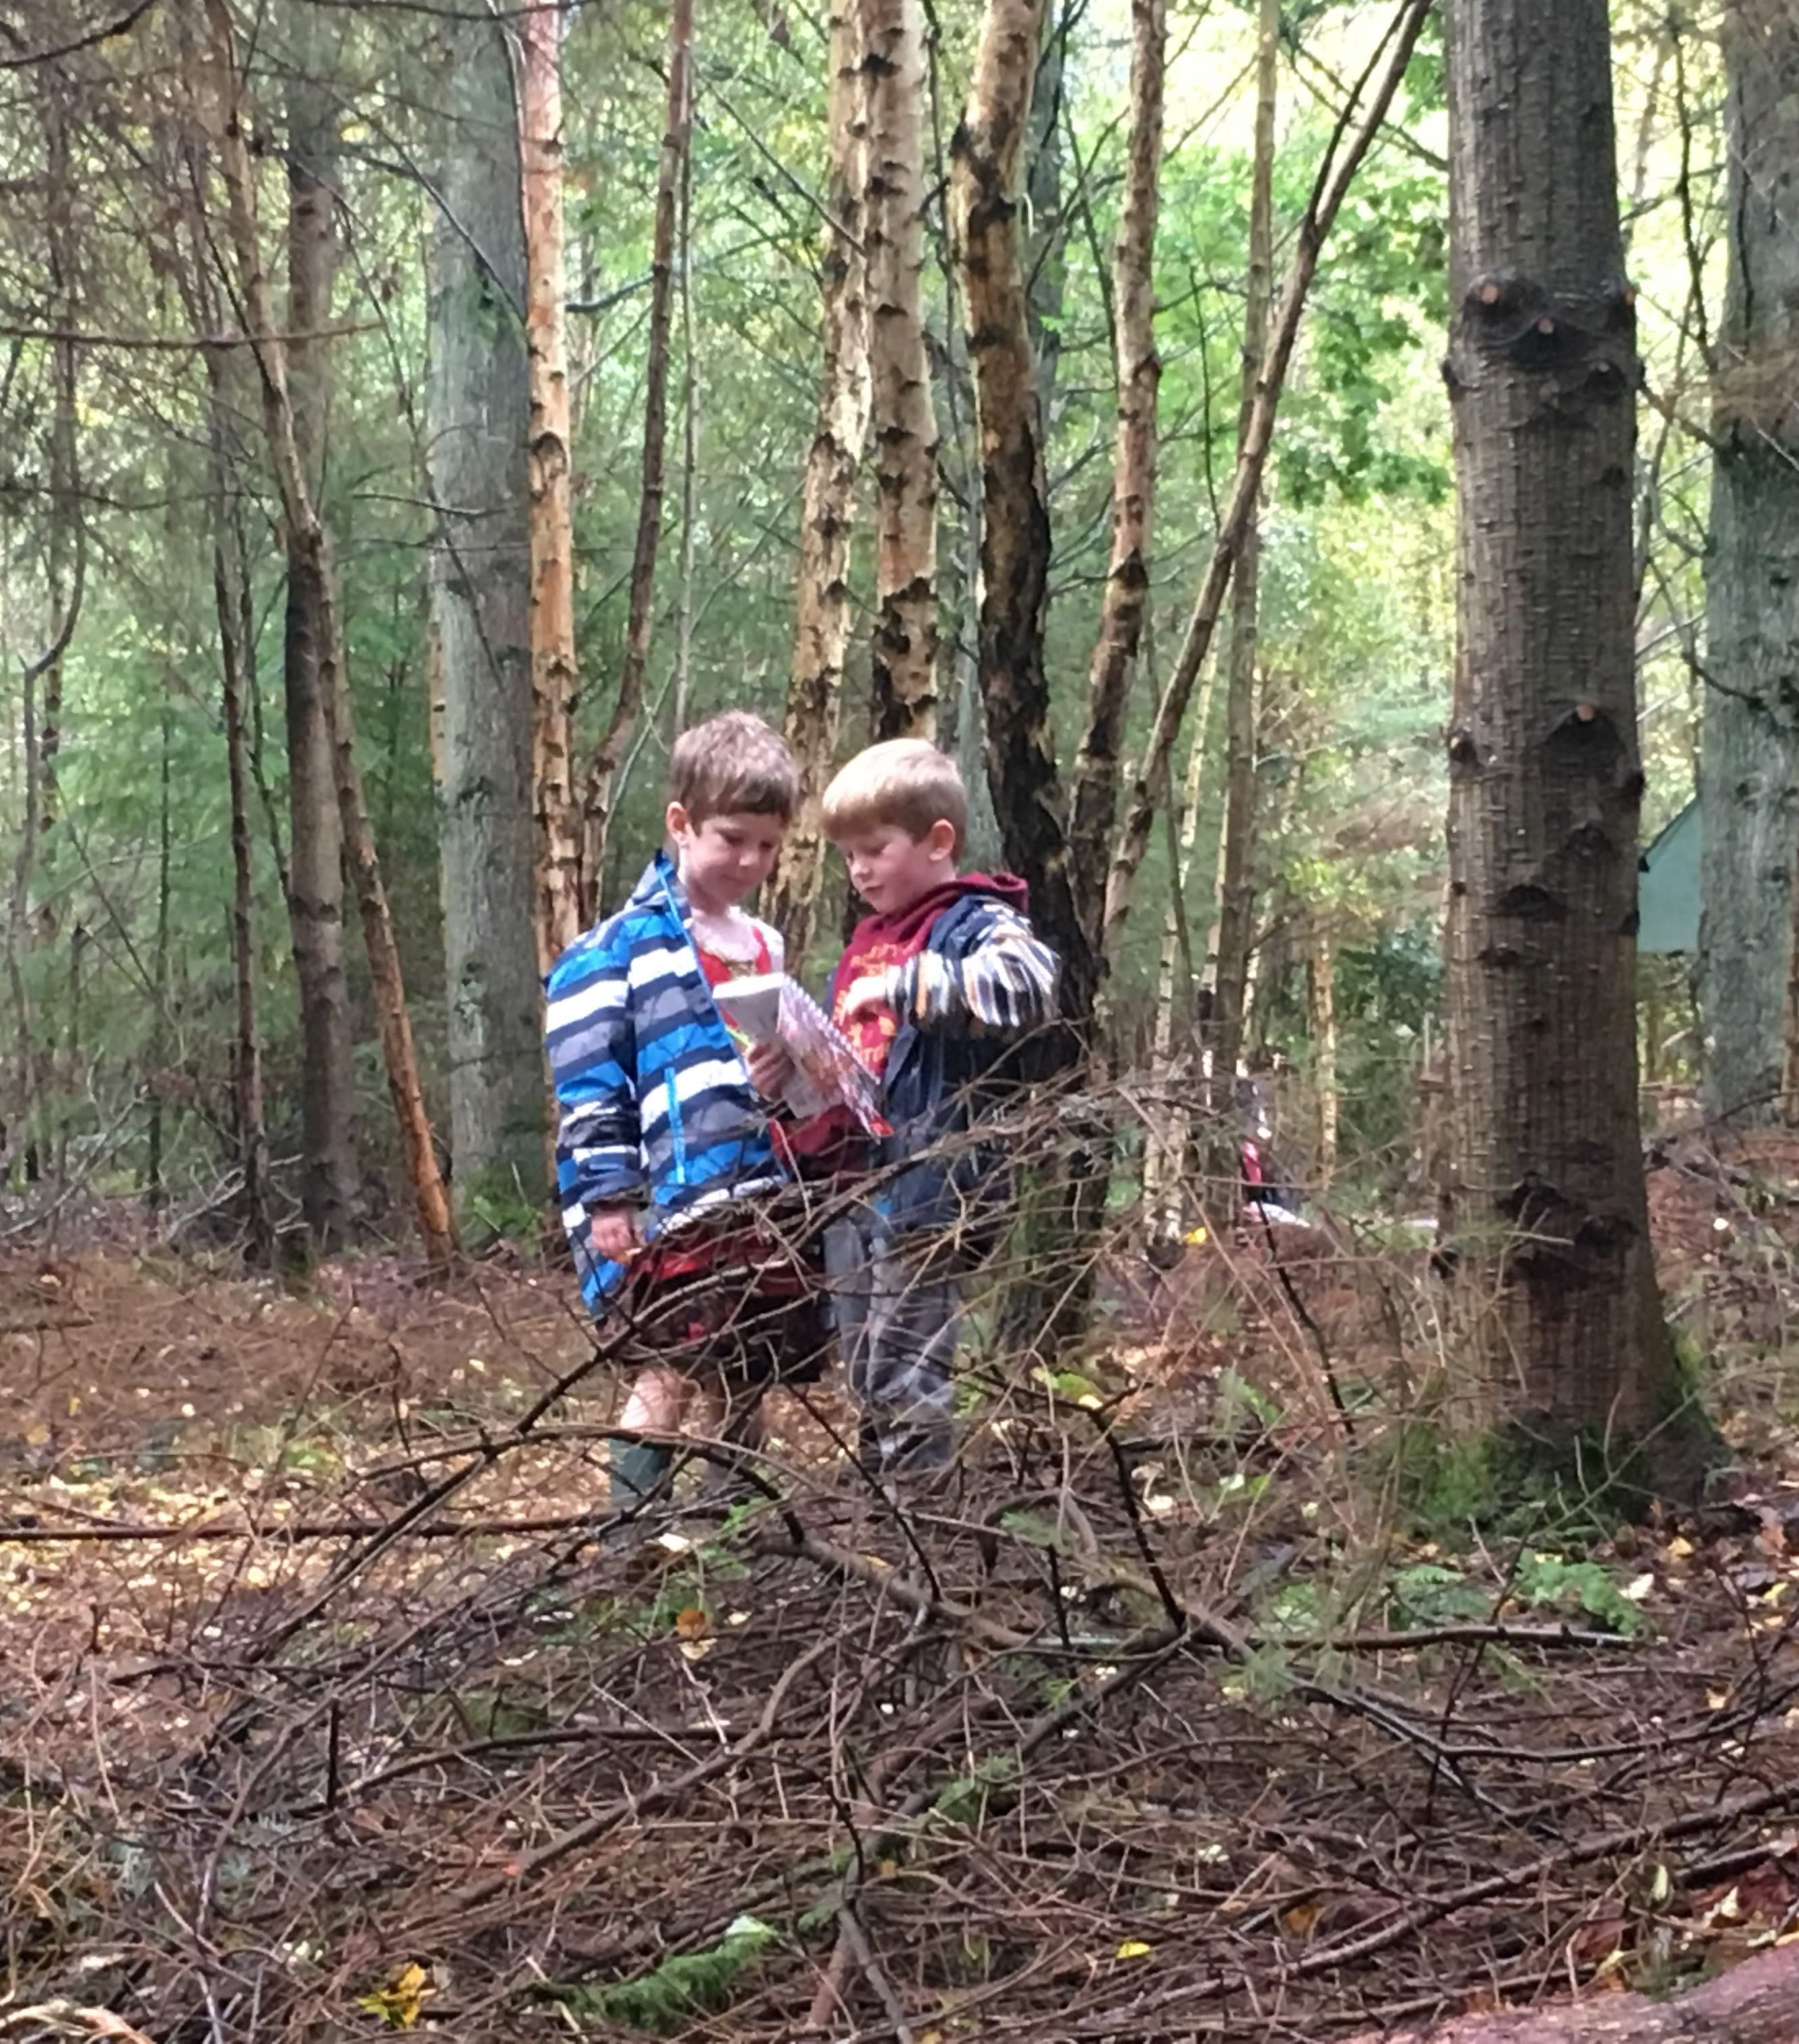 3. In a Woodland Environment